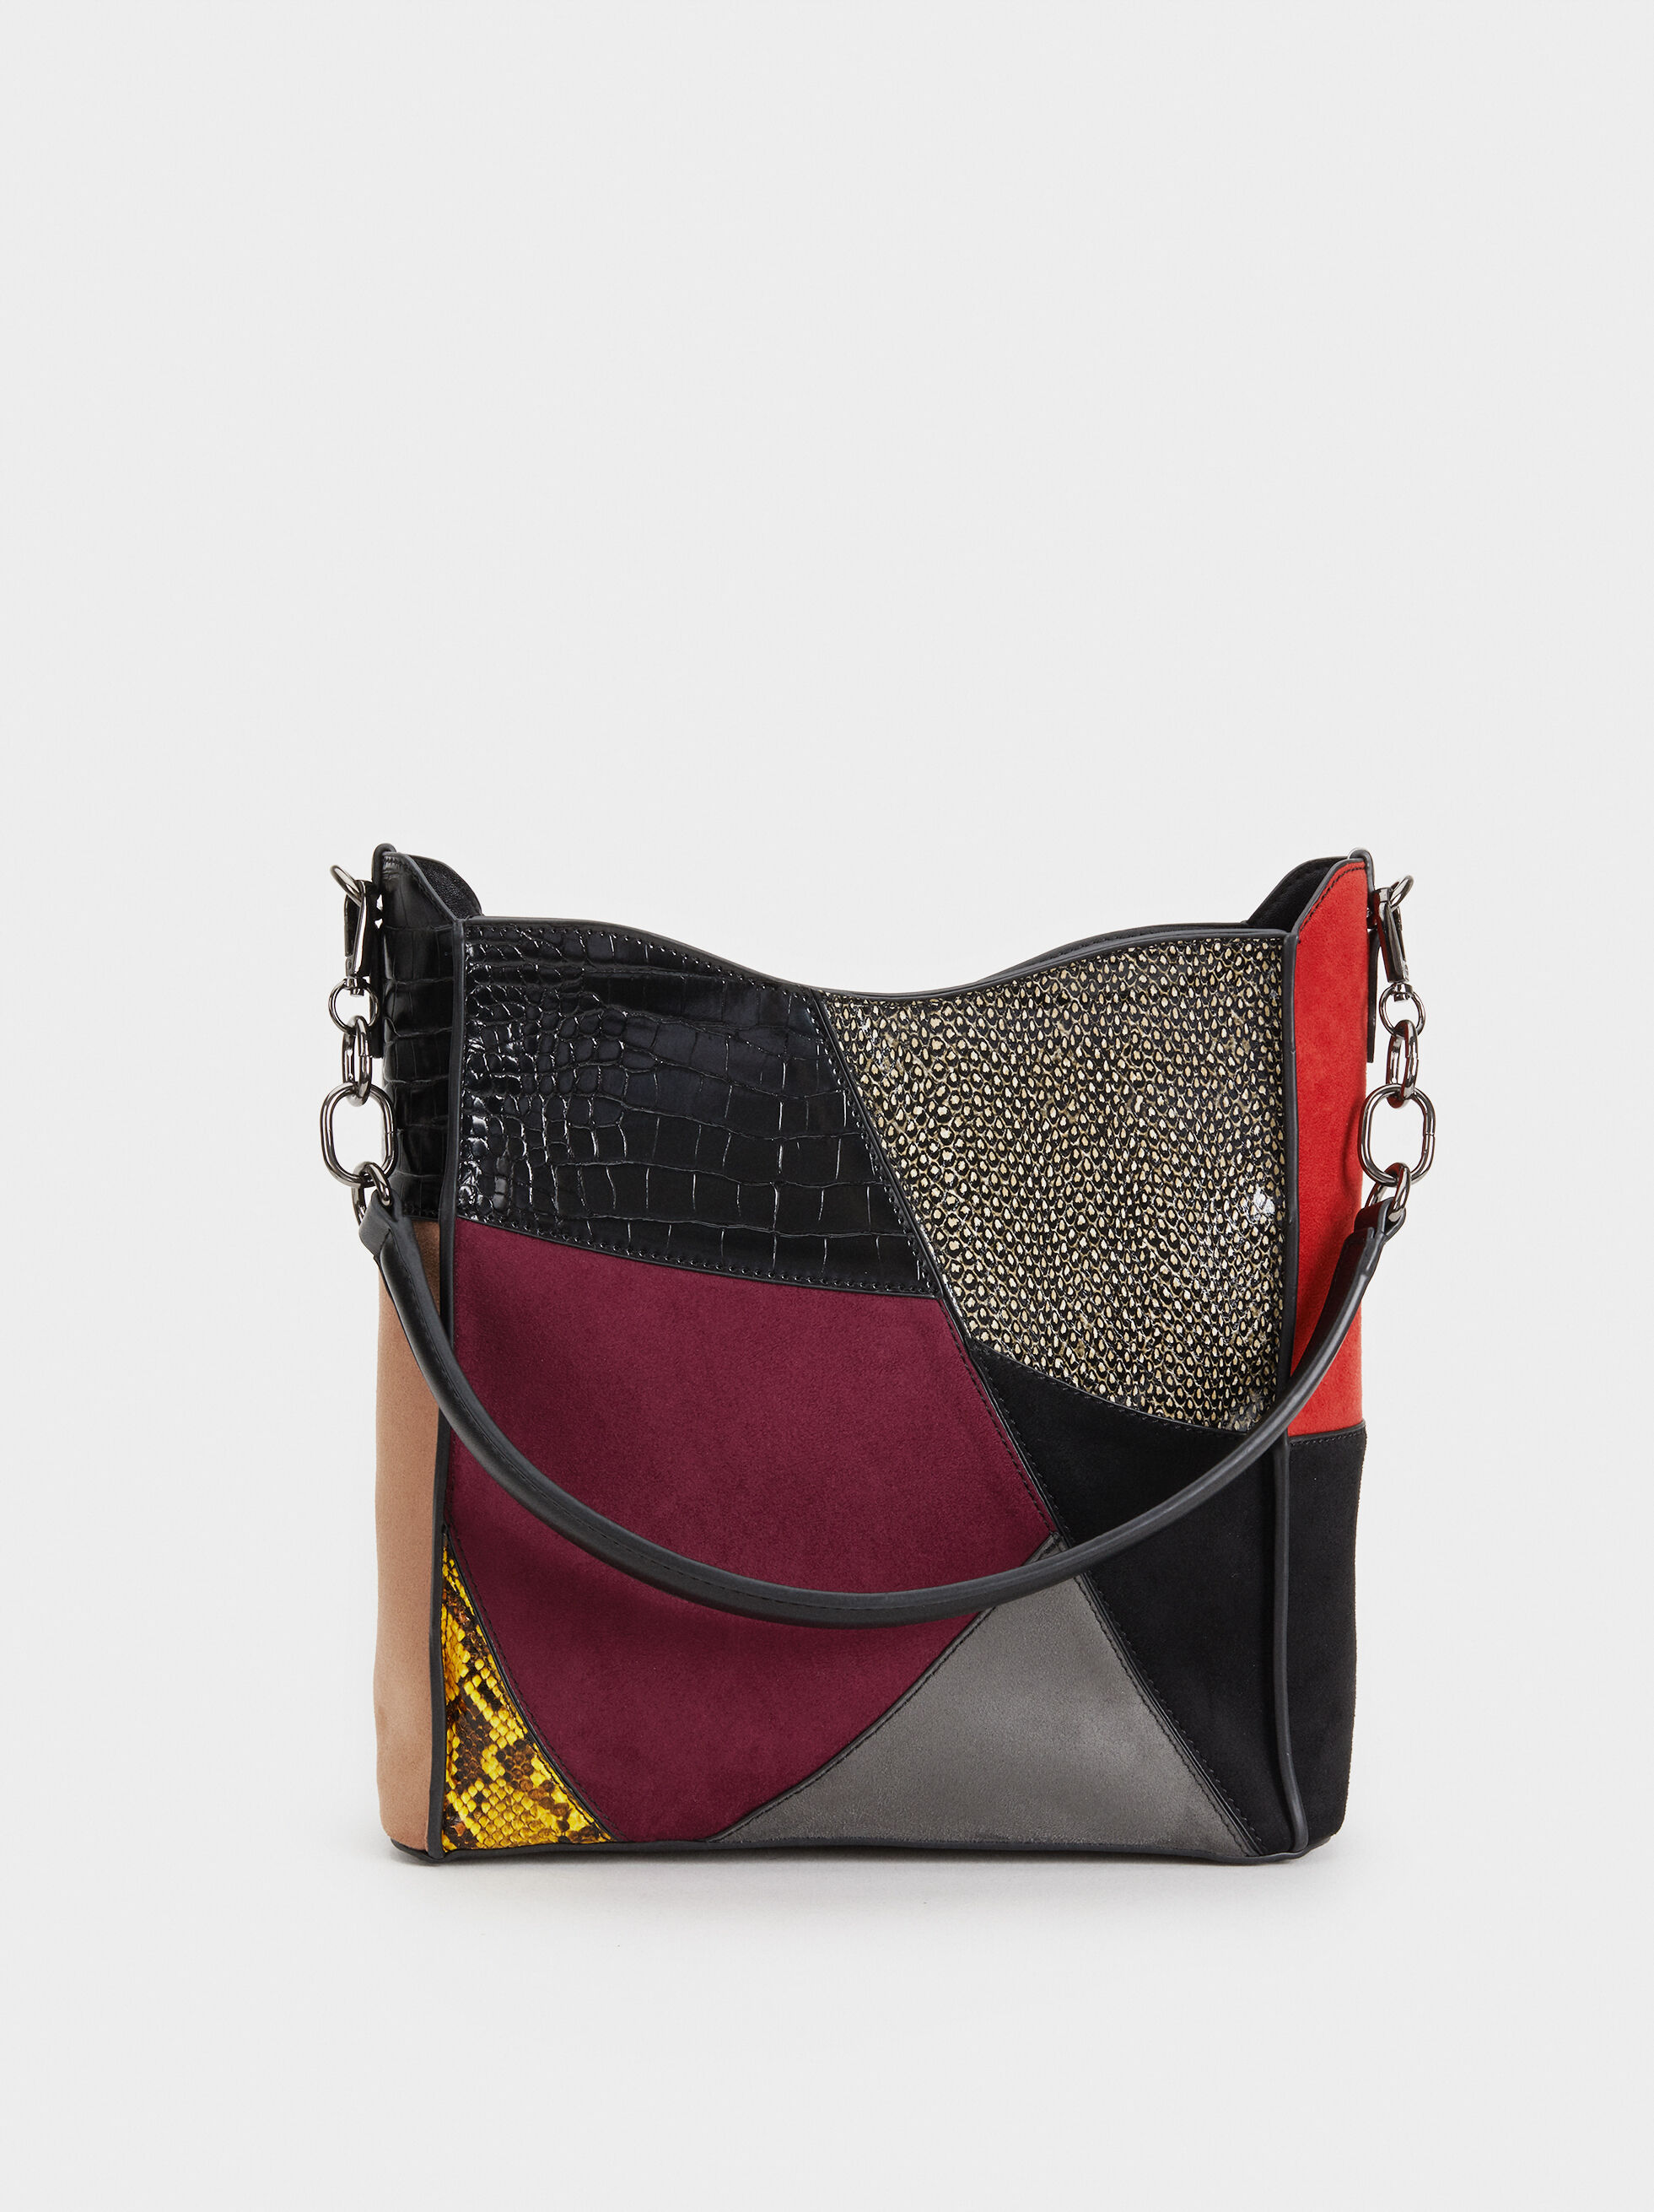 Patchwork Handbag, Black, hi-res